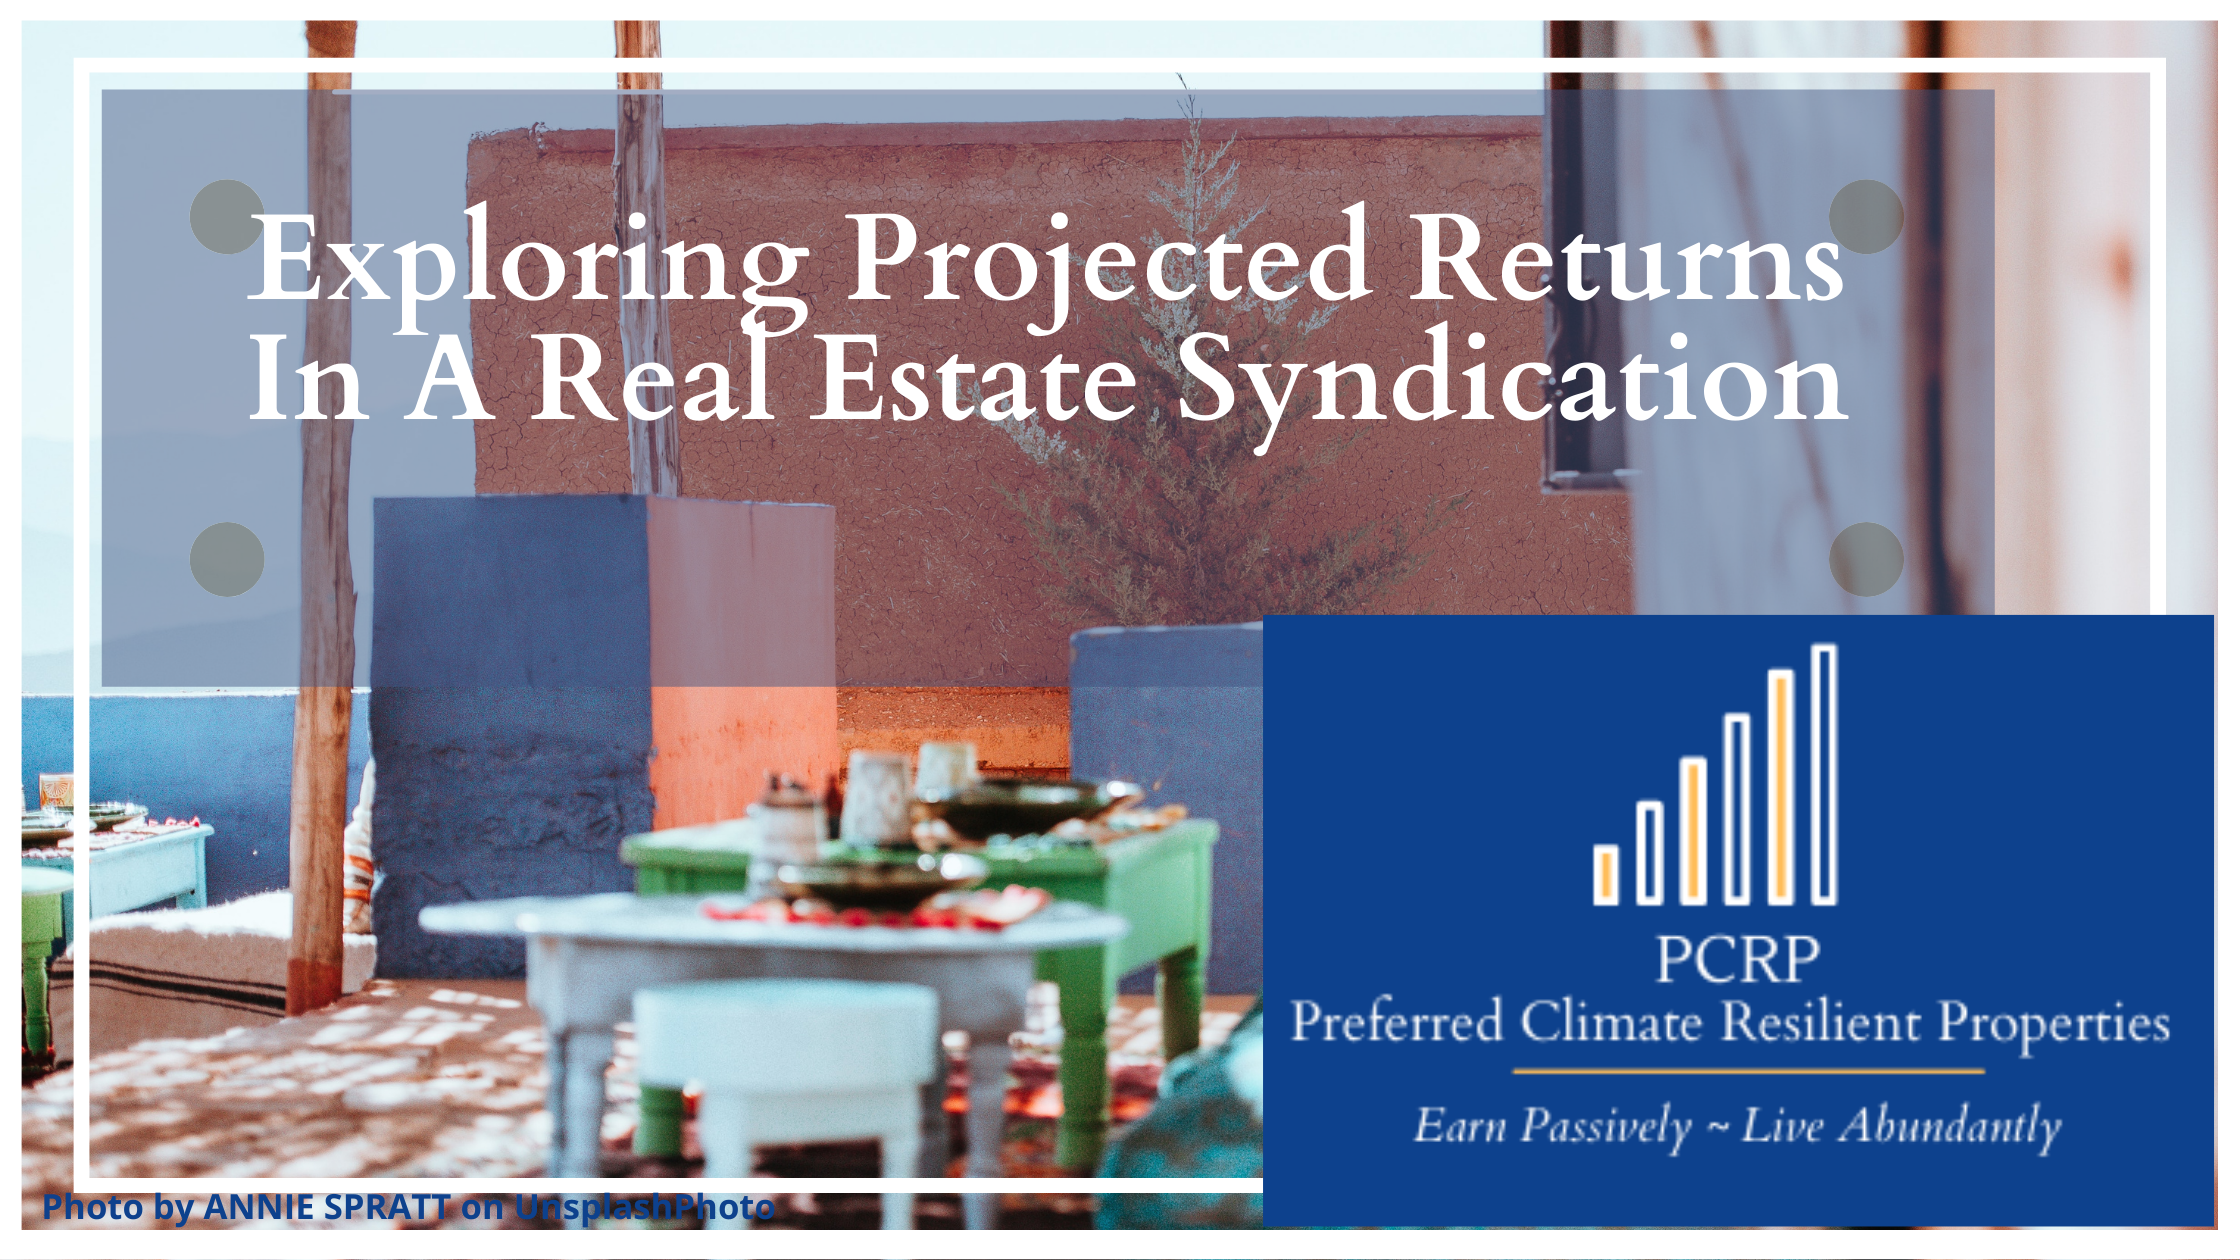 Projected Returns in a Real Estate Syndication